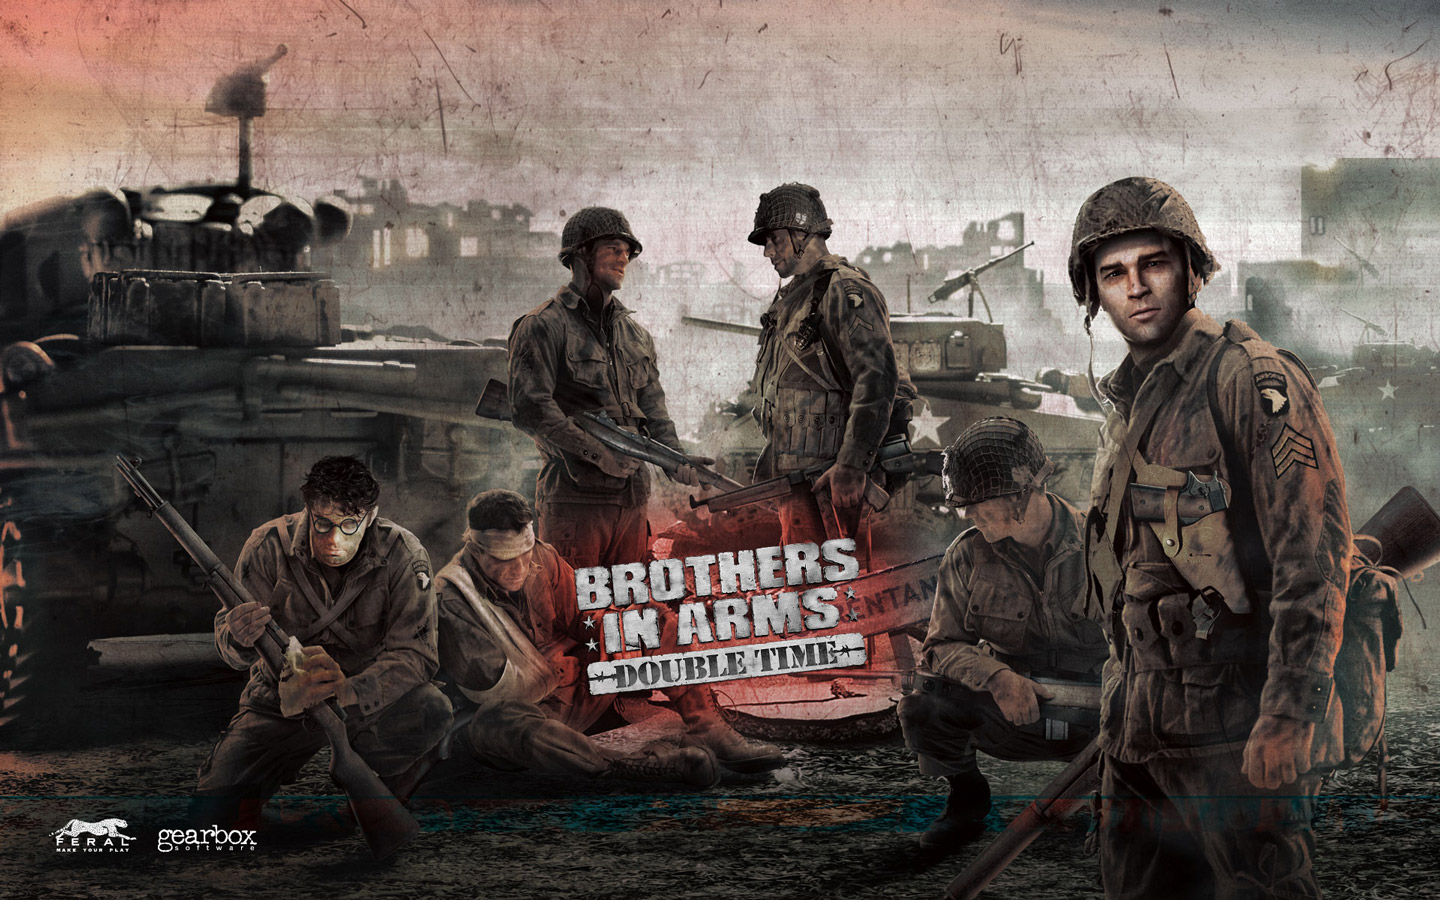 High Resolution Wallpaper | Brothers In Arms: Double Time 1440x900 px